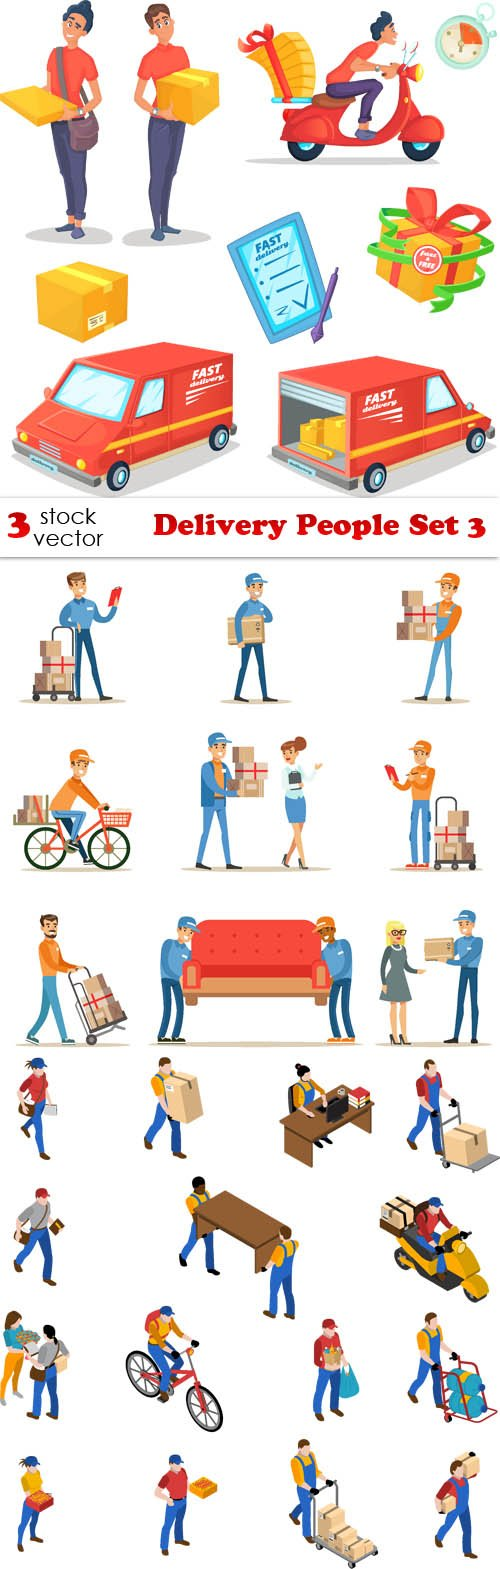 Vectors - Delivery People Set 3